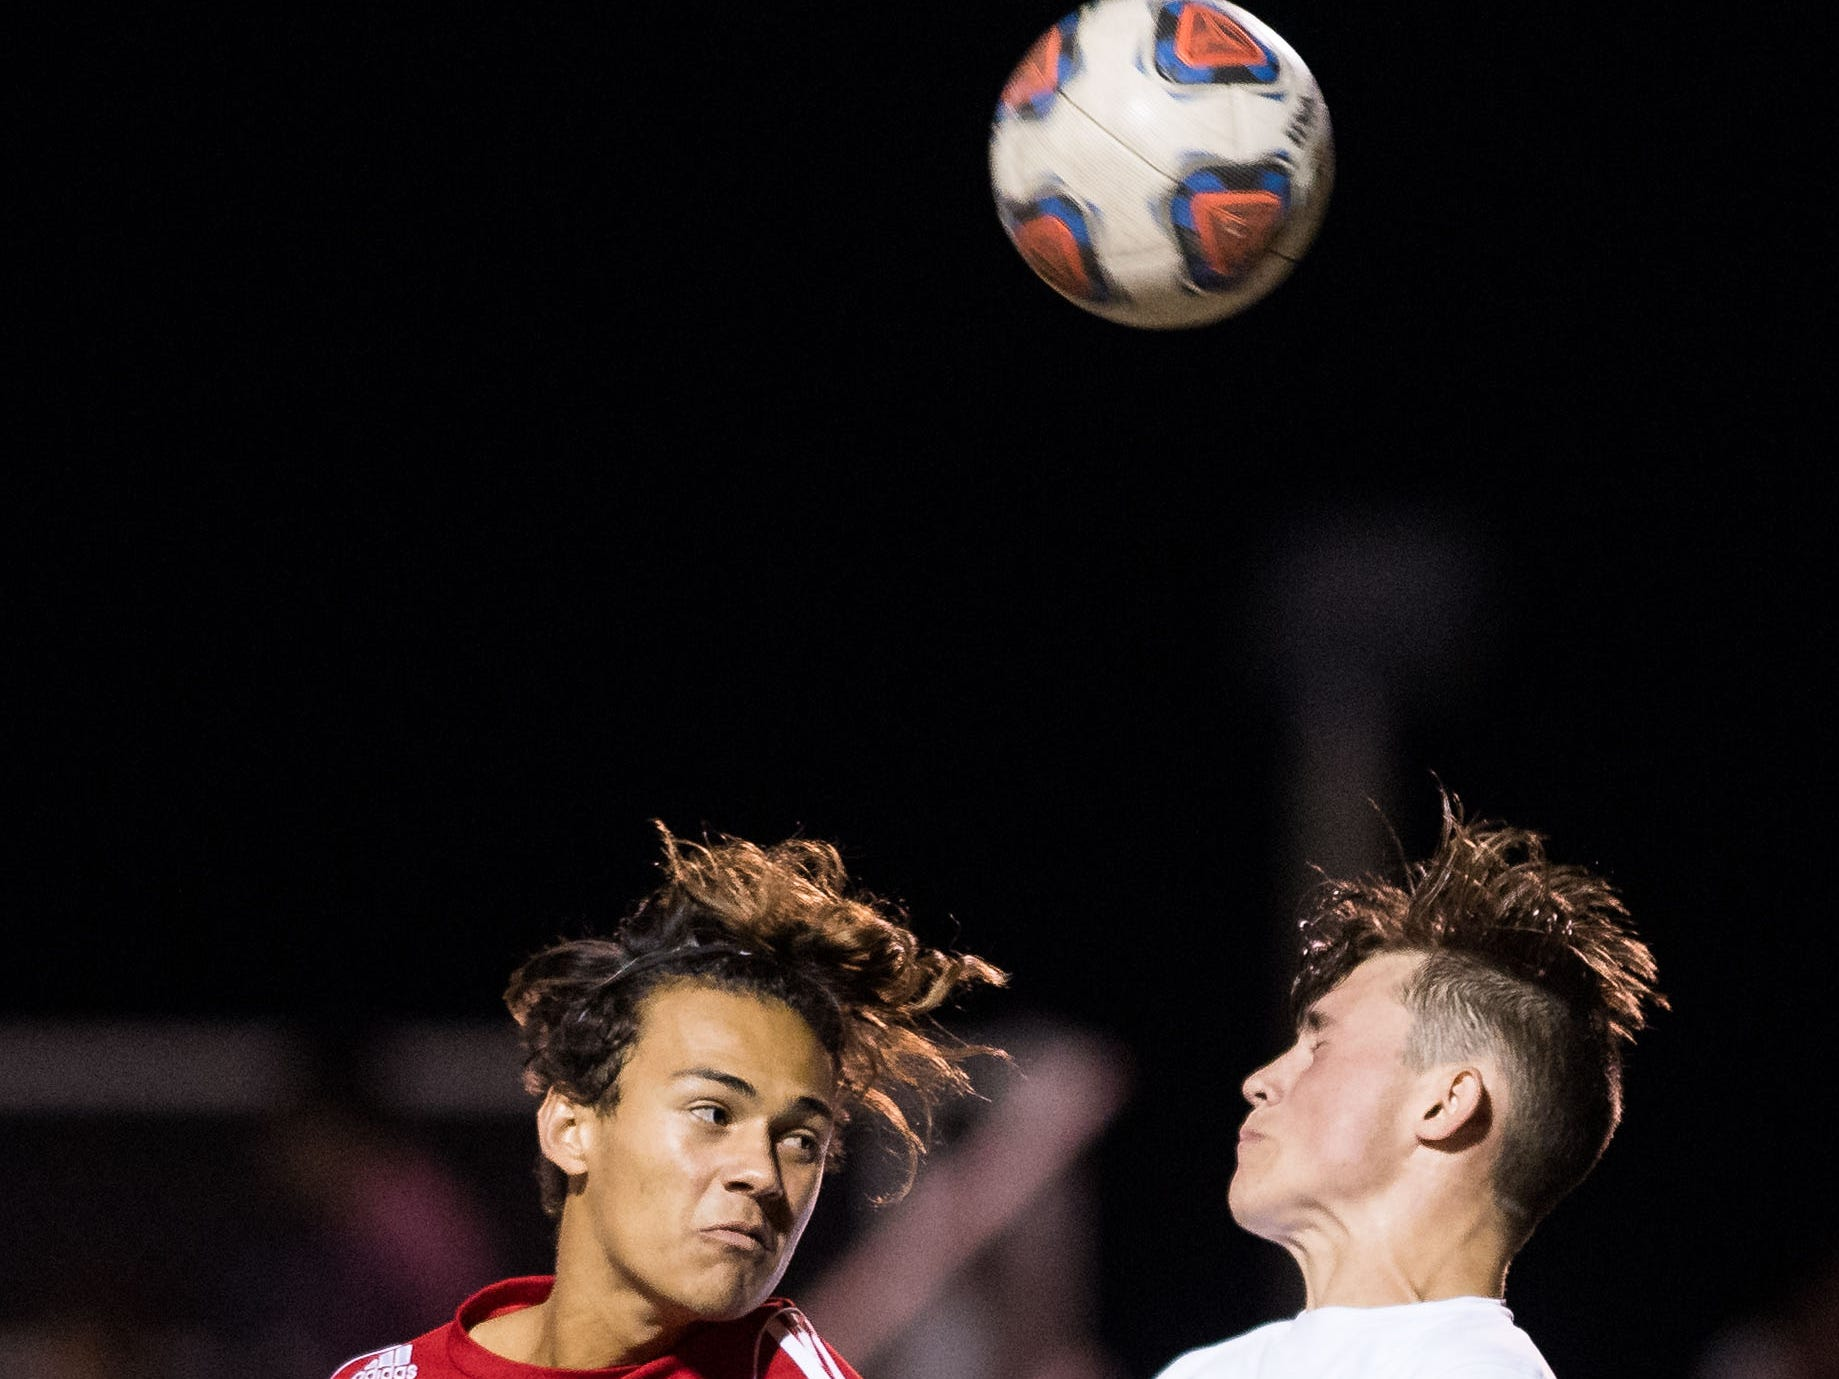 Vero Beach's Chris Rubiano (left) and Okeechobee's Justin Comfort vie for a header during the first half of the high school boys soccer game Friday, Jan. 18, 2019, at Vero Beach High School.